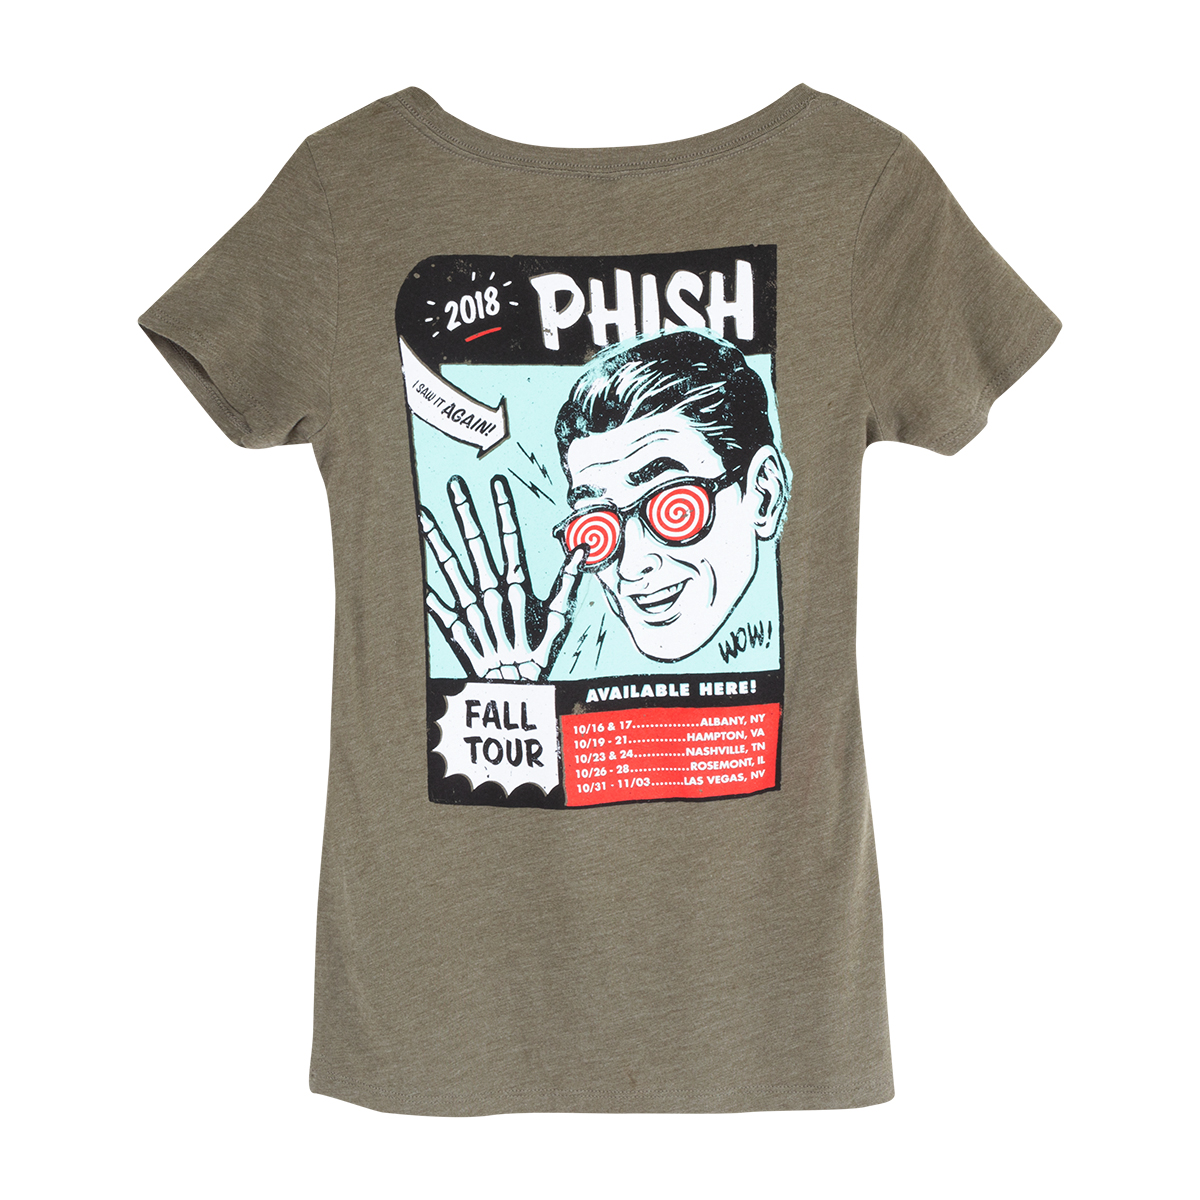 Fall Tour Womens X-Ray Specs T